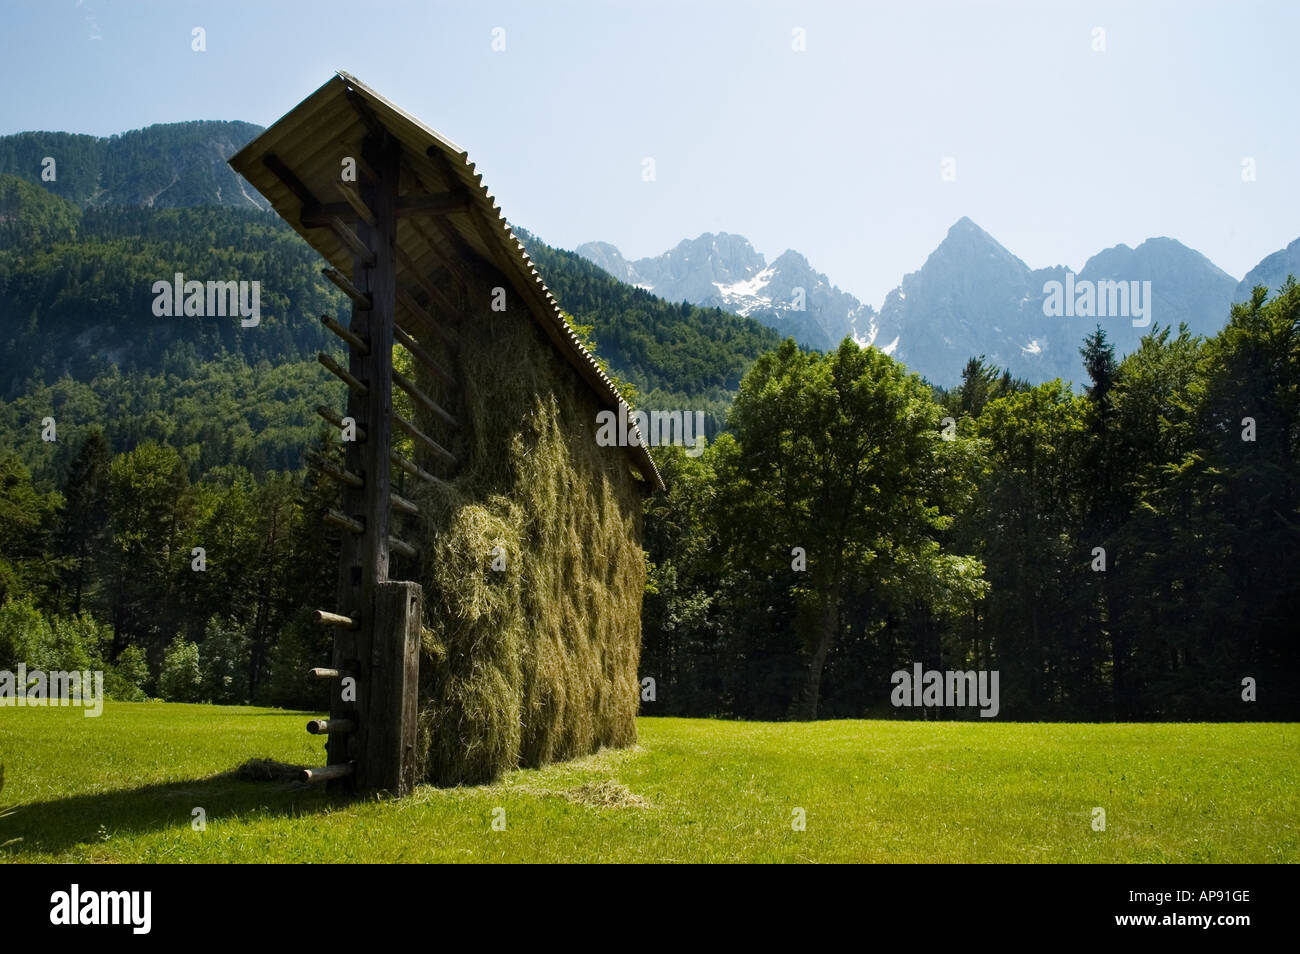 rack slovenia village racks photo bohinj landscape stock in region hay slovenian